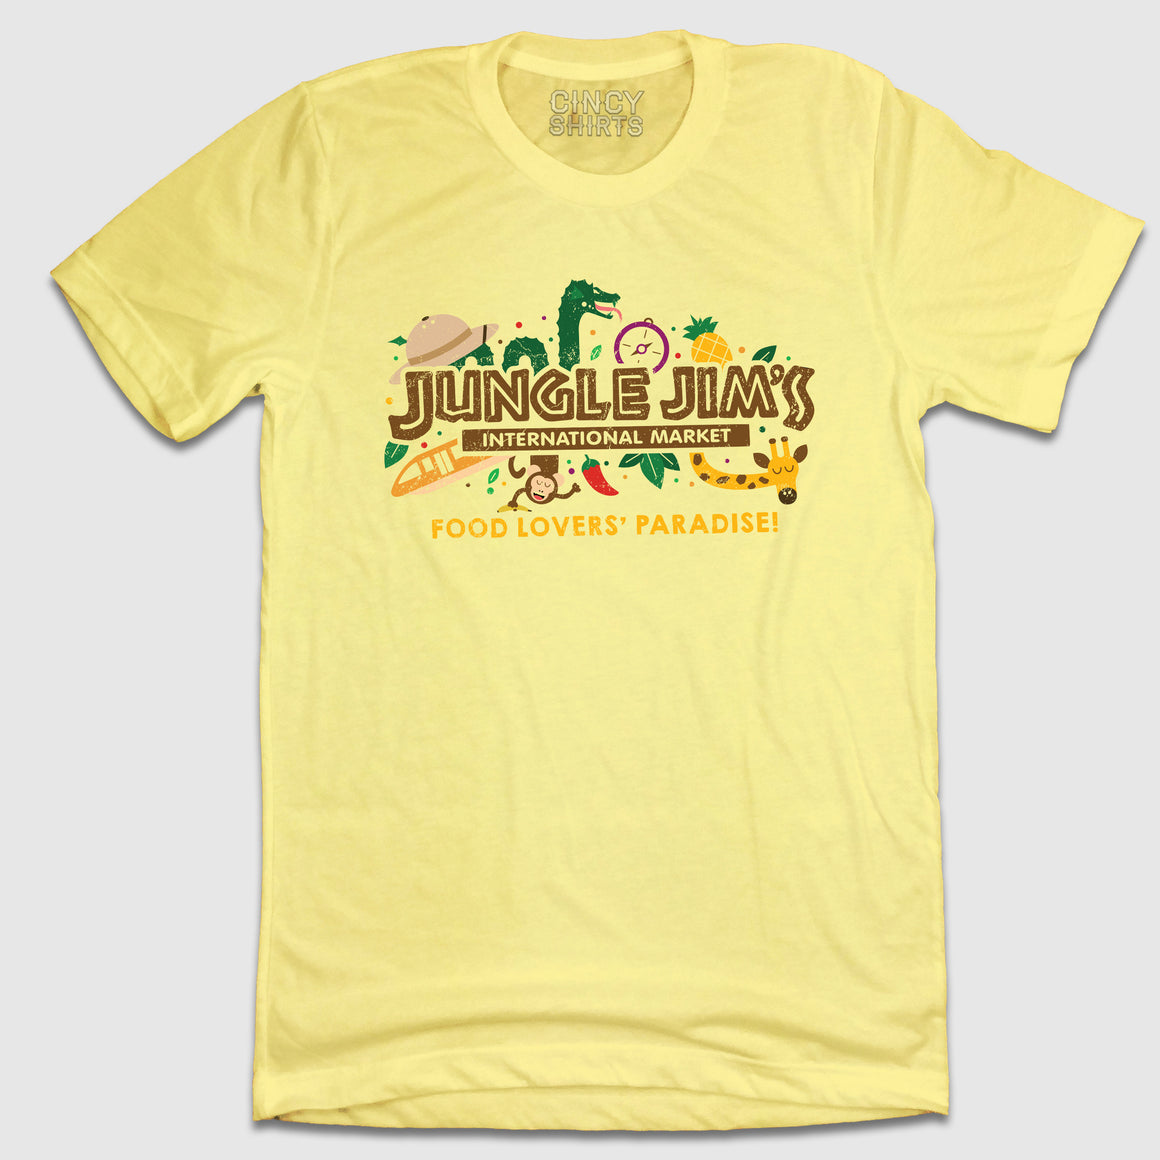 Jungle Jim's - Food Lover's Paradise! - Cincy Shirts